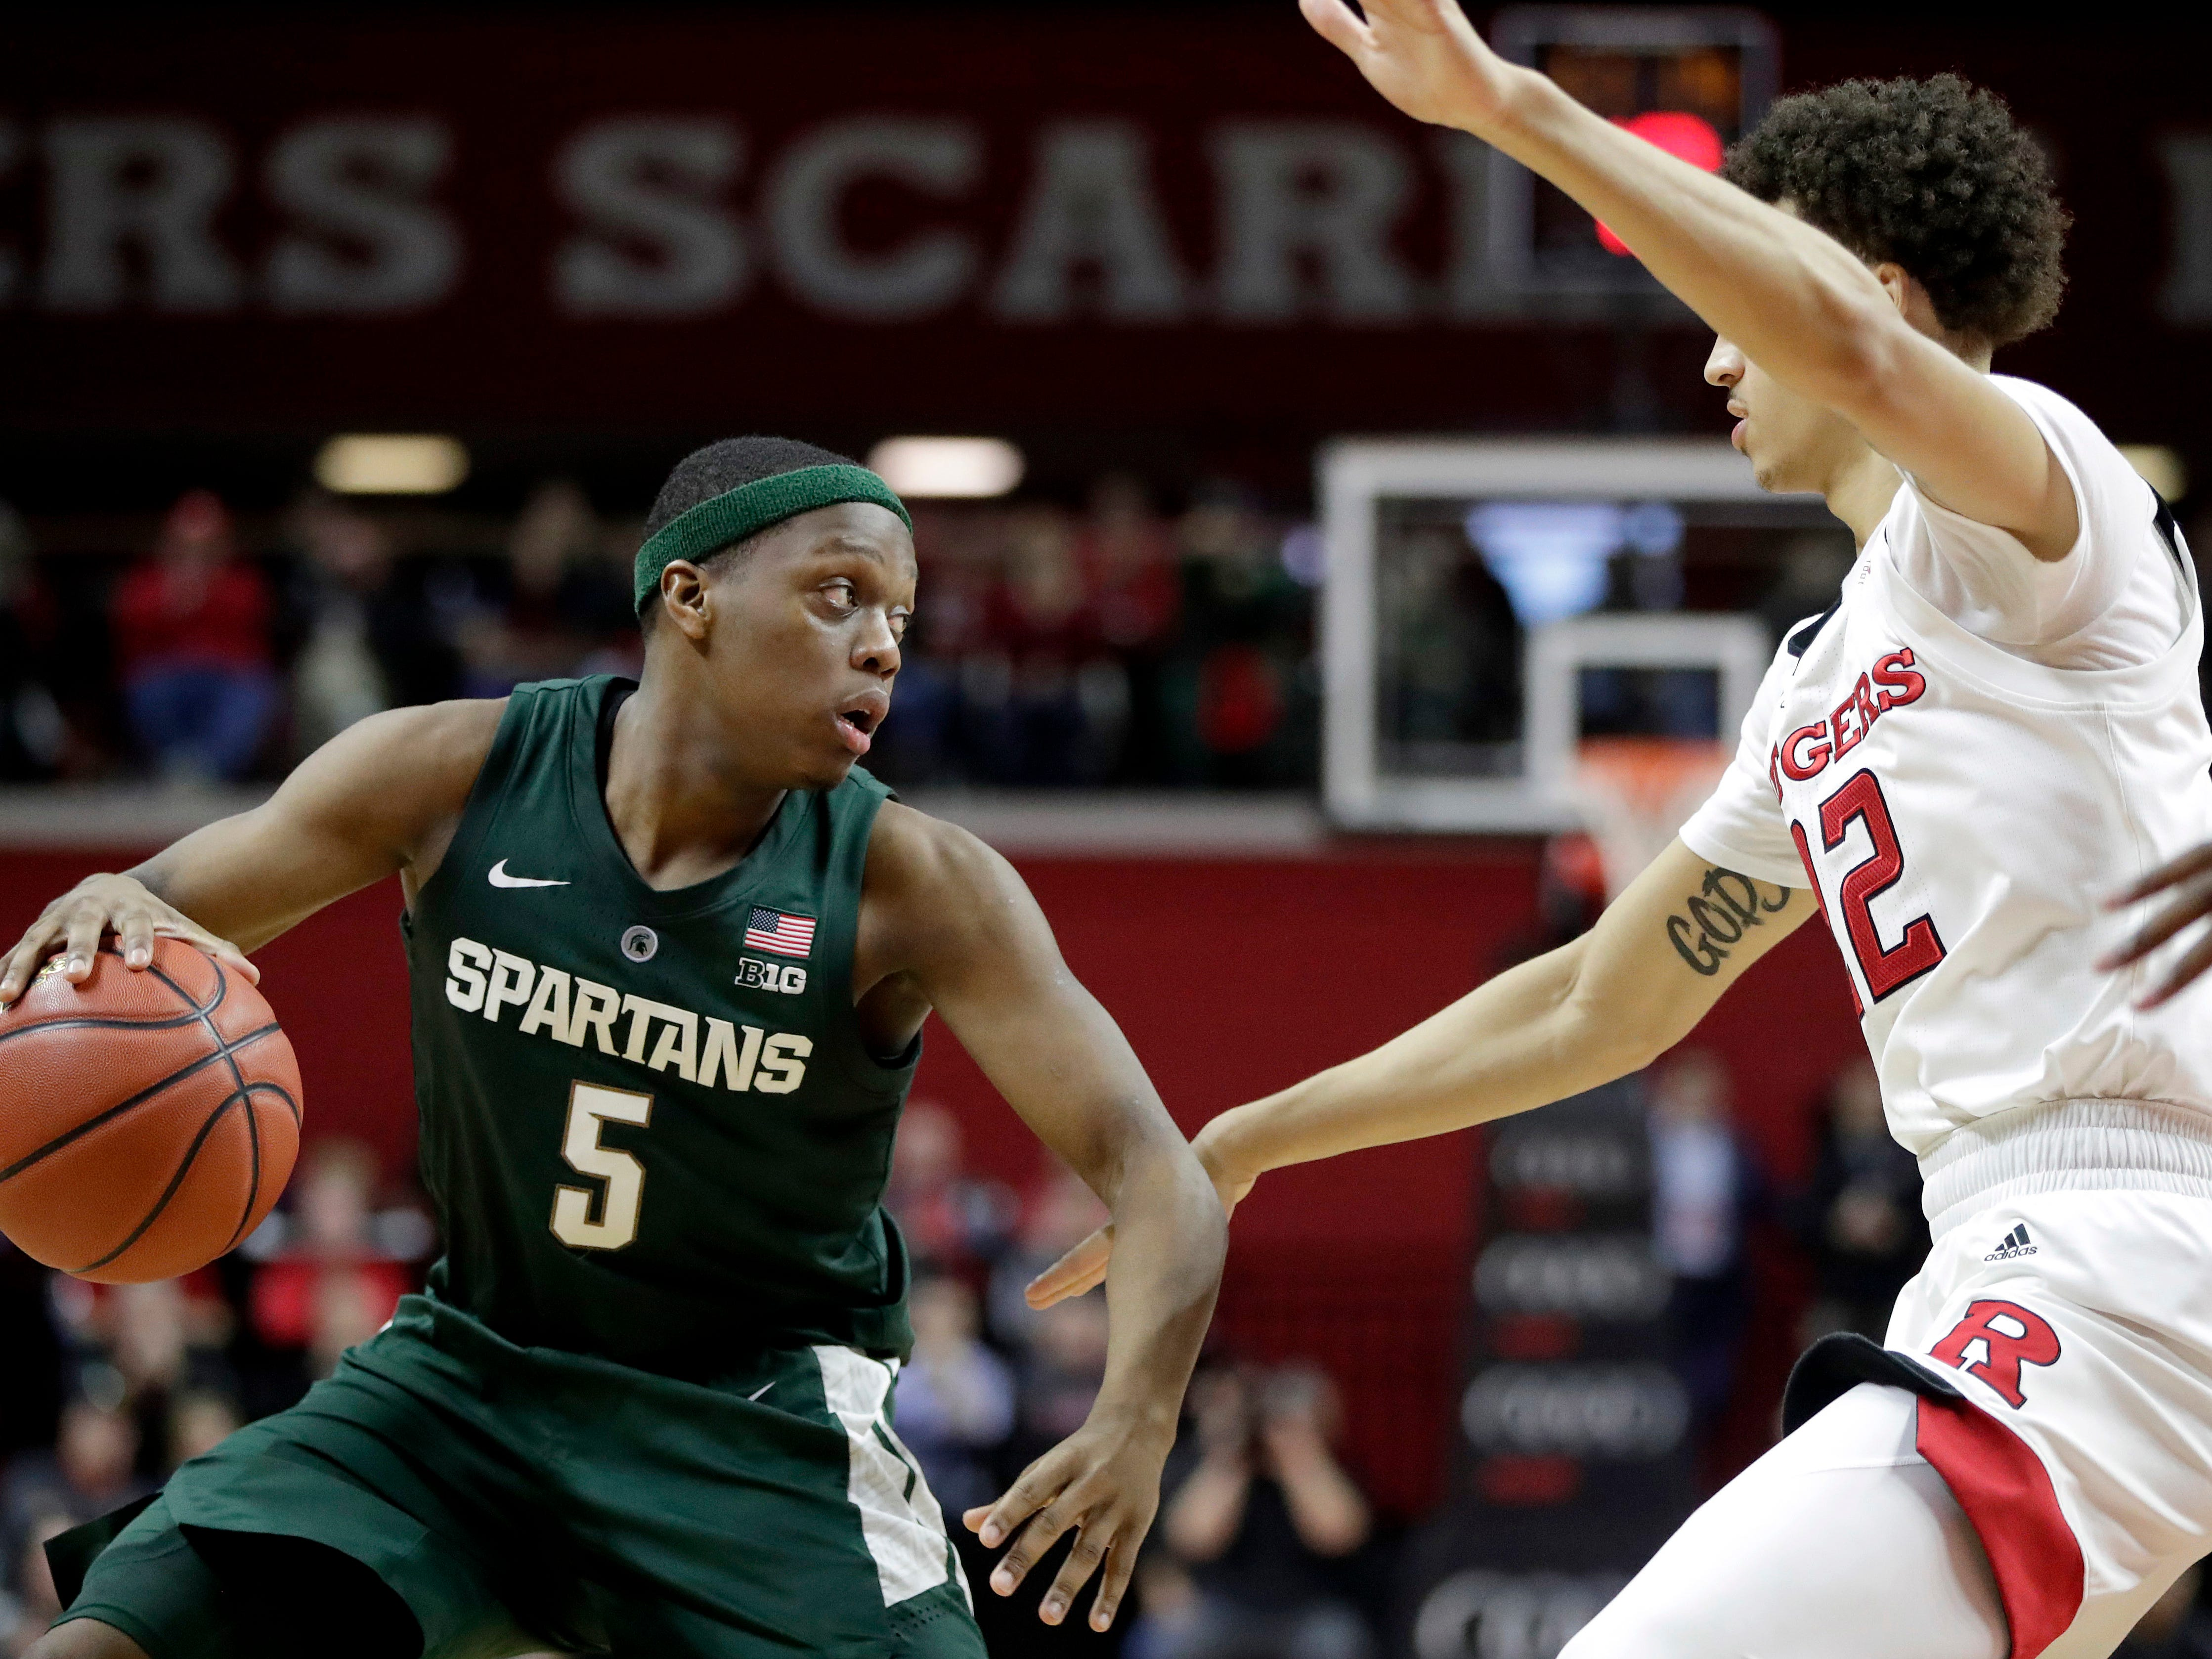 Michigan State guard Cassius Winston, left, drives against Rutgers guard Caleb McConnell during the second half of an NCAA college basketball game, Friday, Nov. 30, 2018, in Piscataway, N.J.